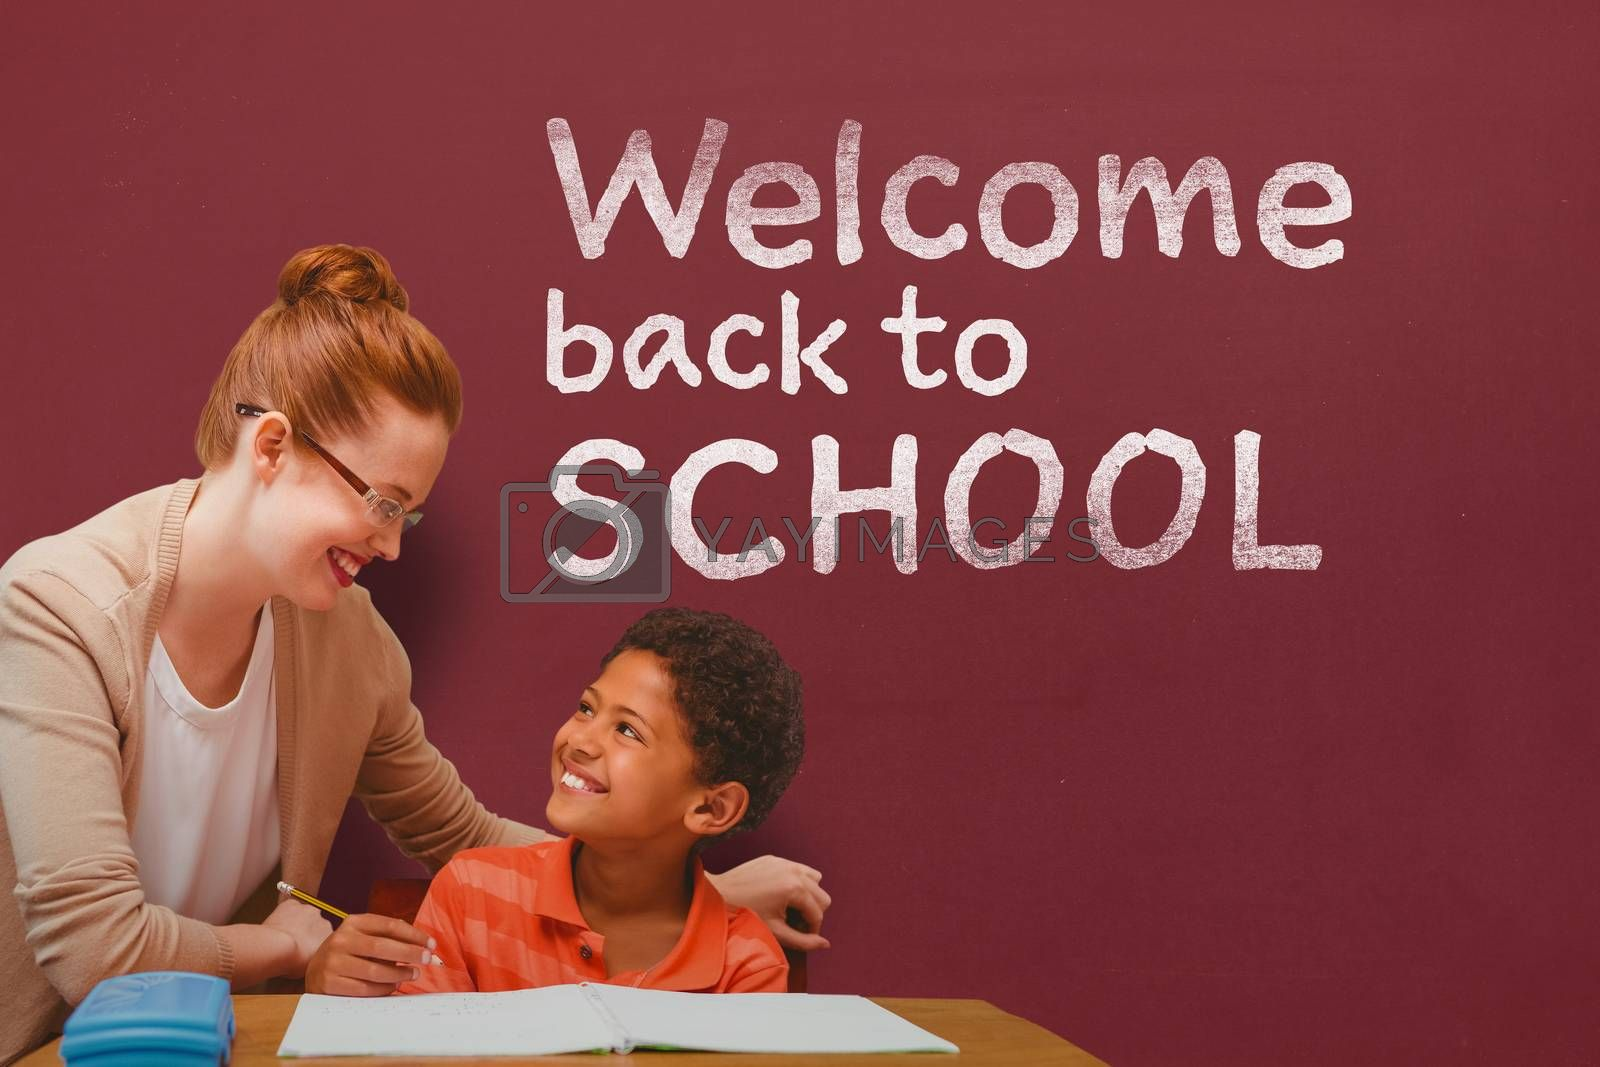 Teacher helping pupil against welcome back to school text against white background